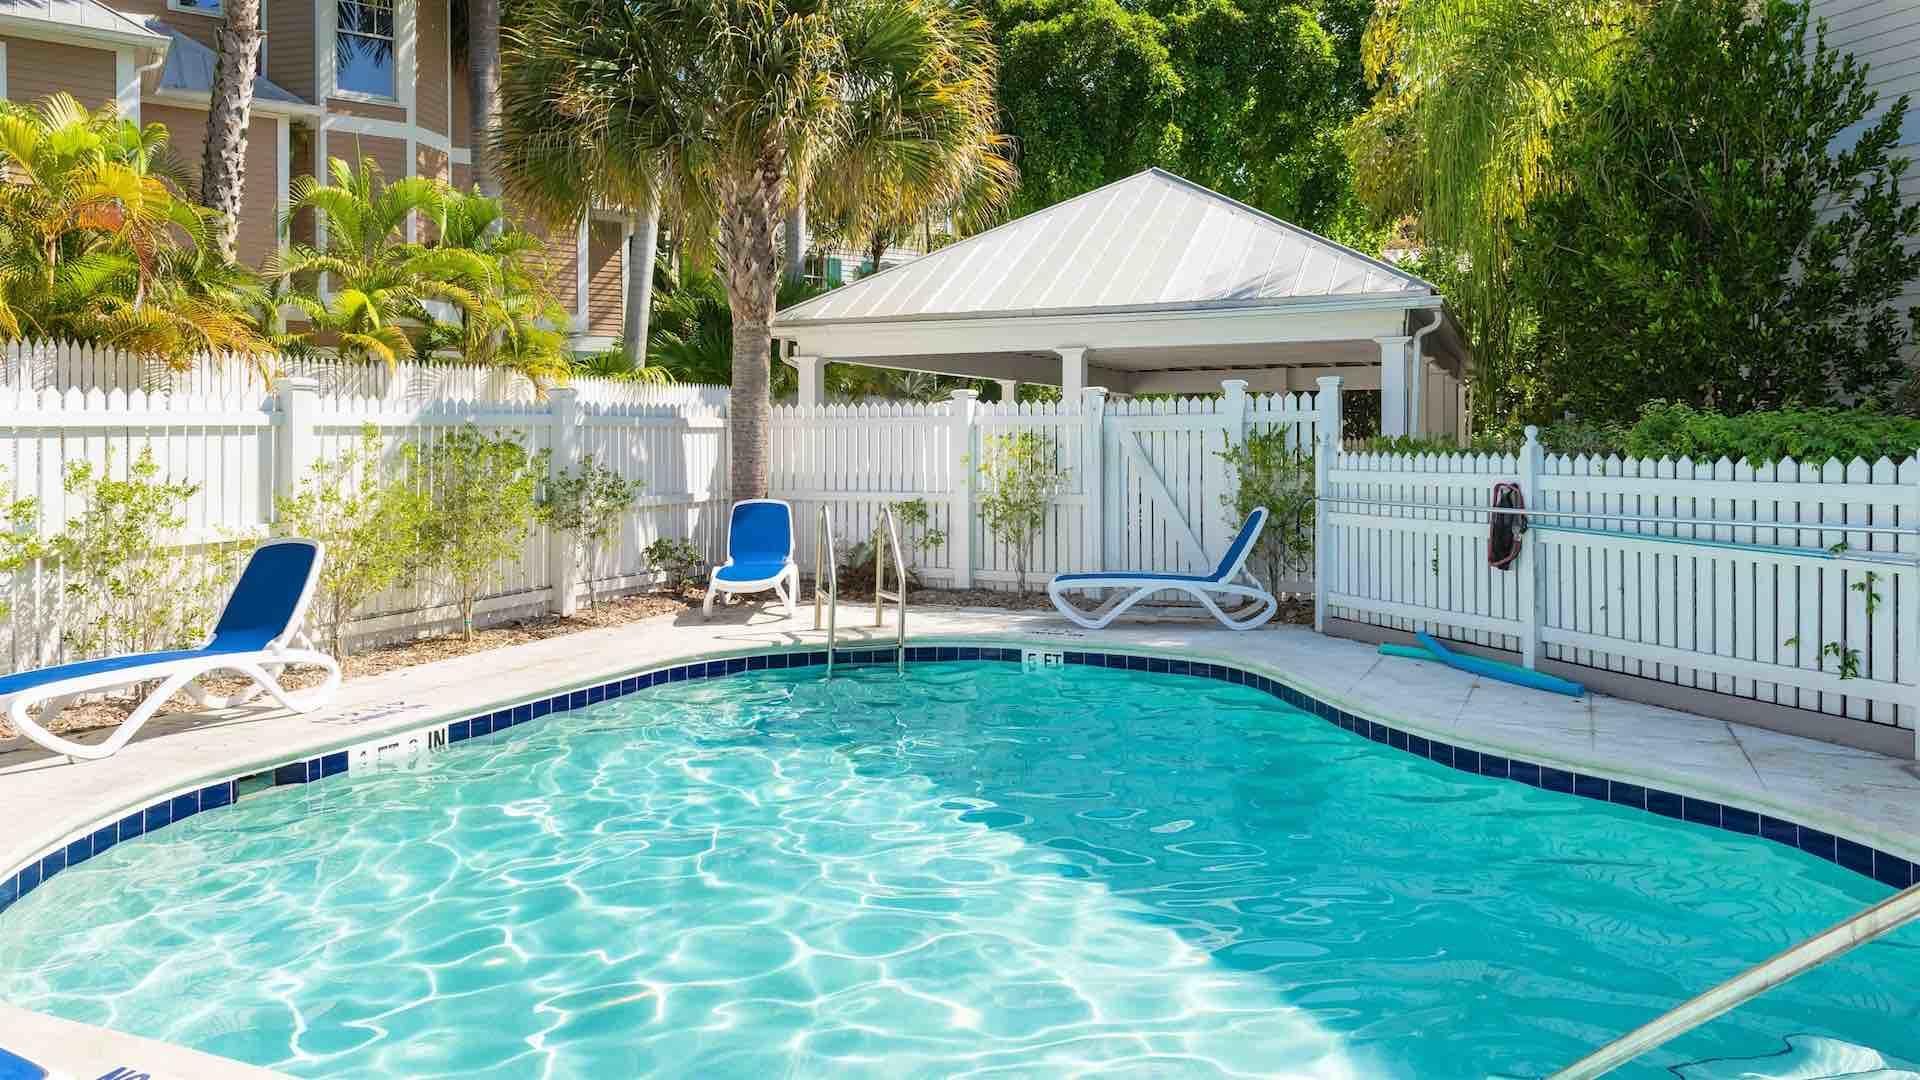 The landscaped community pool is located just across the street...